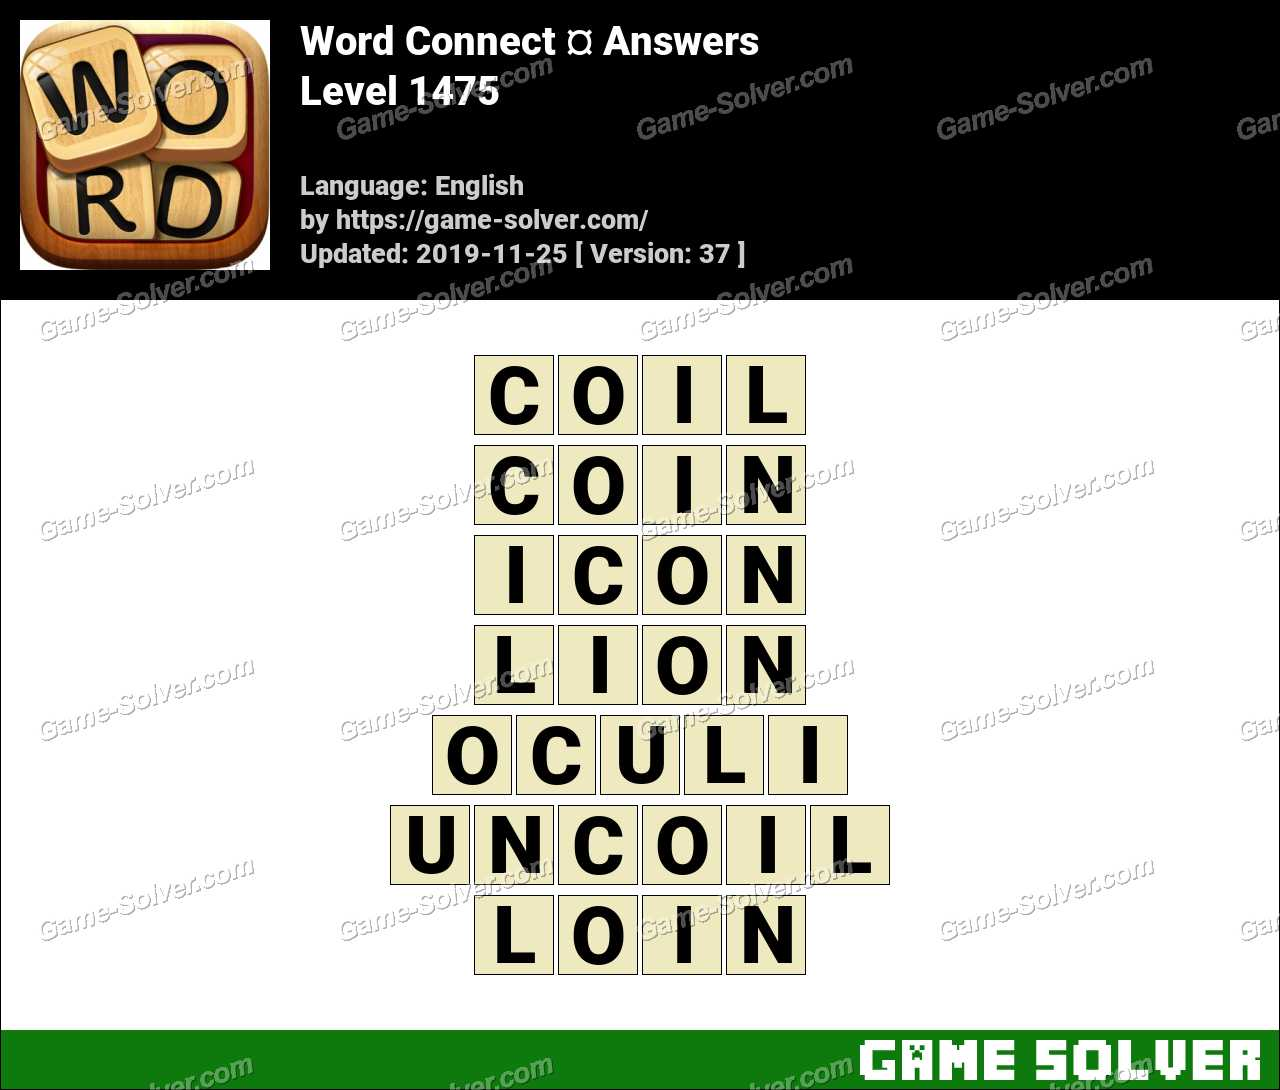 Word Connect Level 1475 Answers